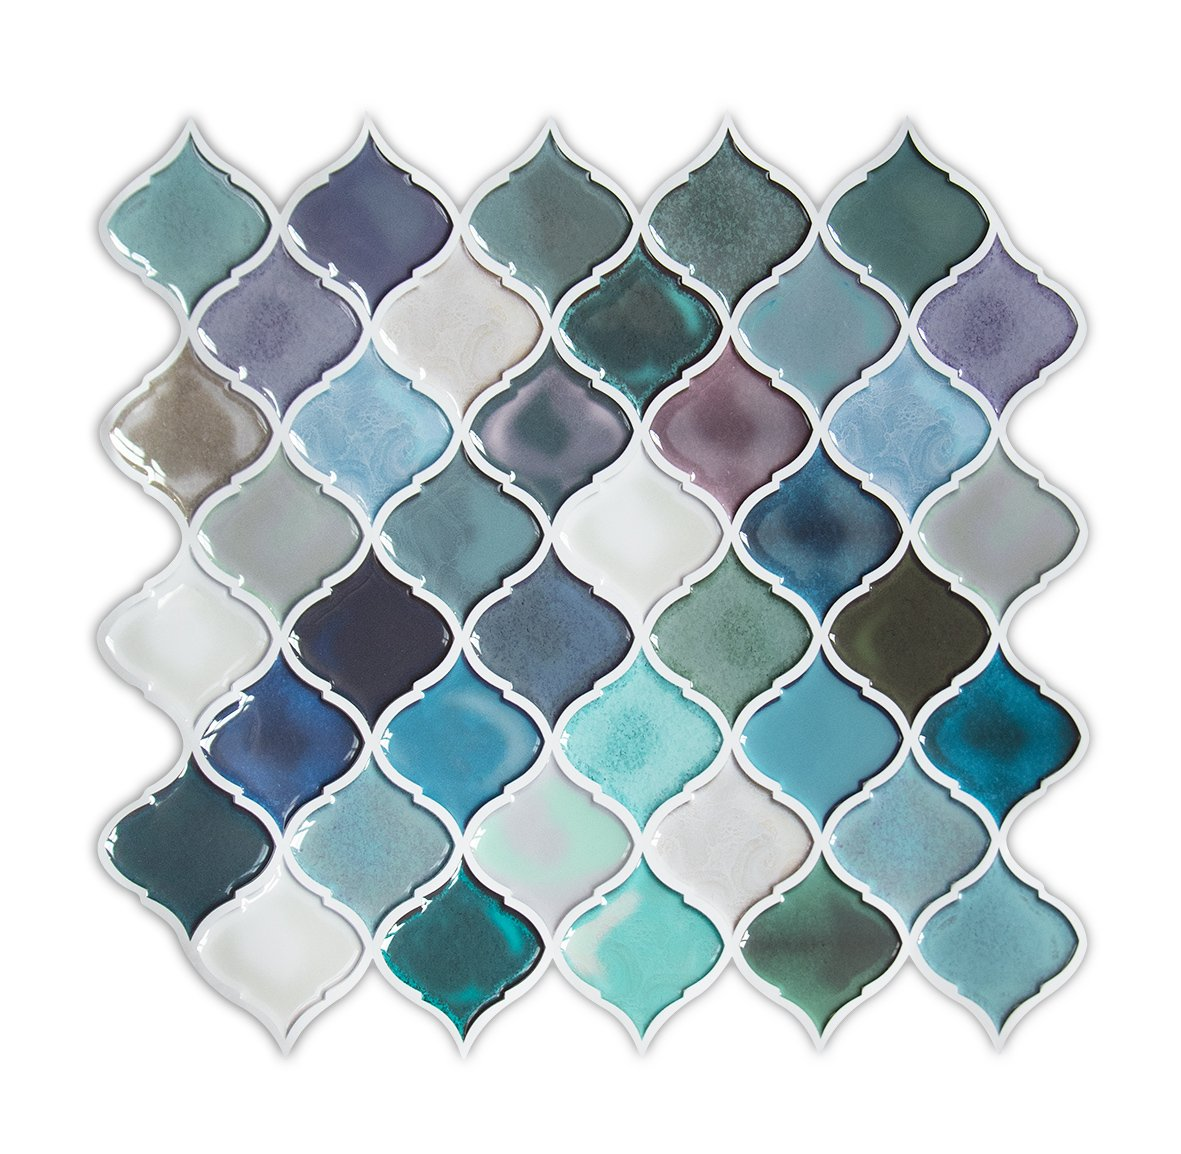 HUE DECORATION Turquoise Quatrefoil Peel and Stick Tile Backsplash, Self Adhesive Wall Tile for Kitchen & Bathroom 10''x11.26'' Pack of 2 (Sample)